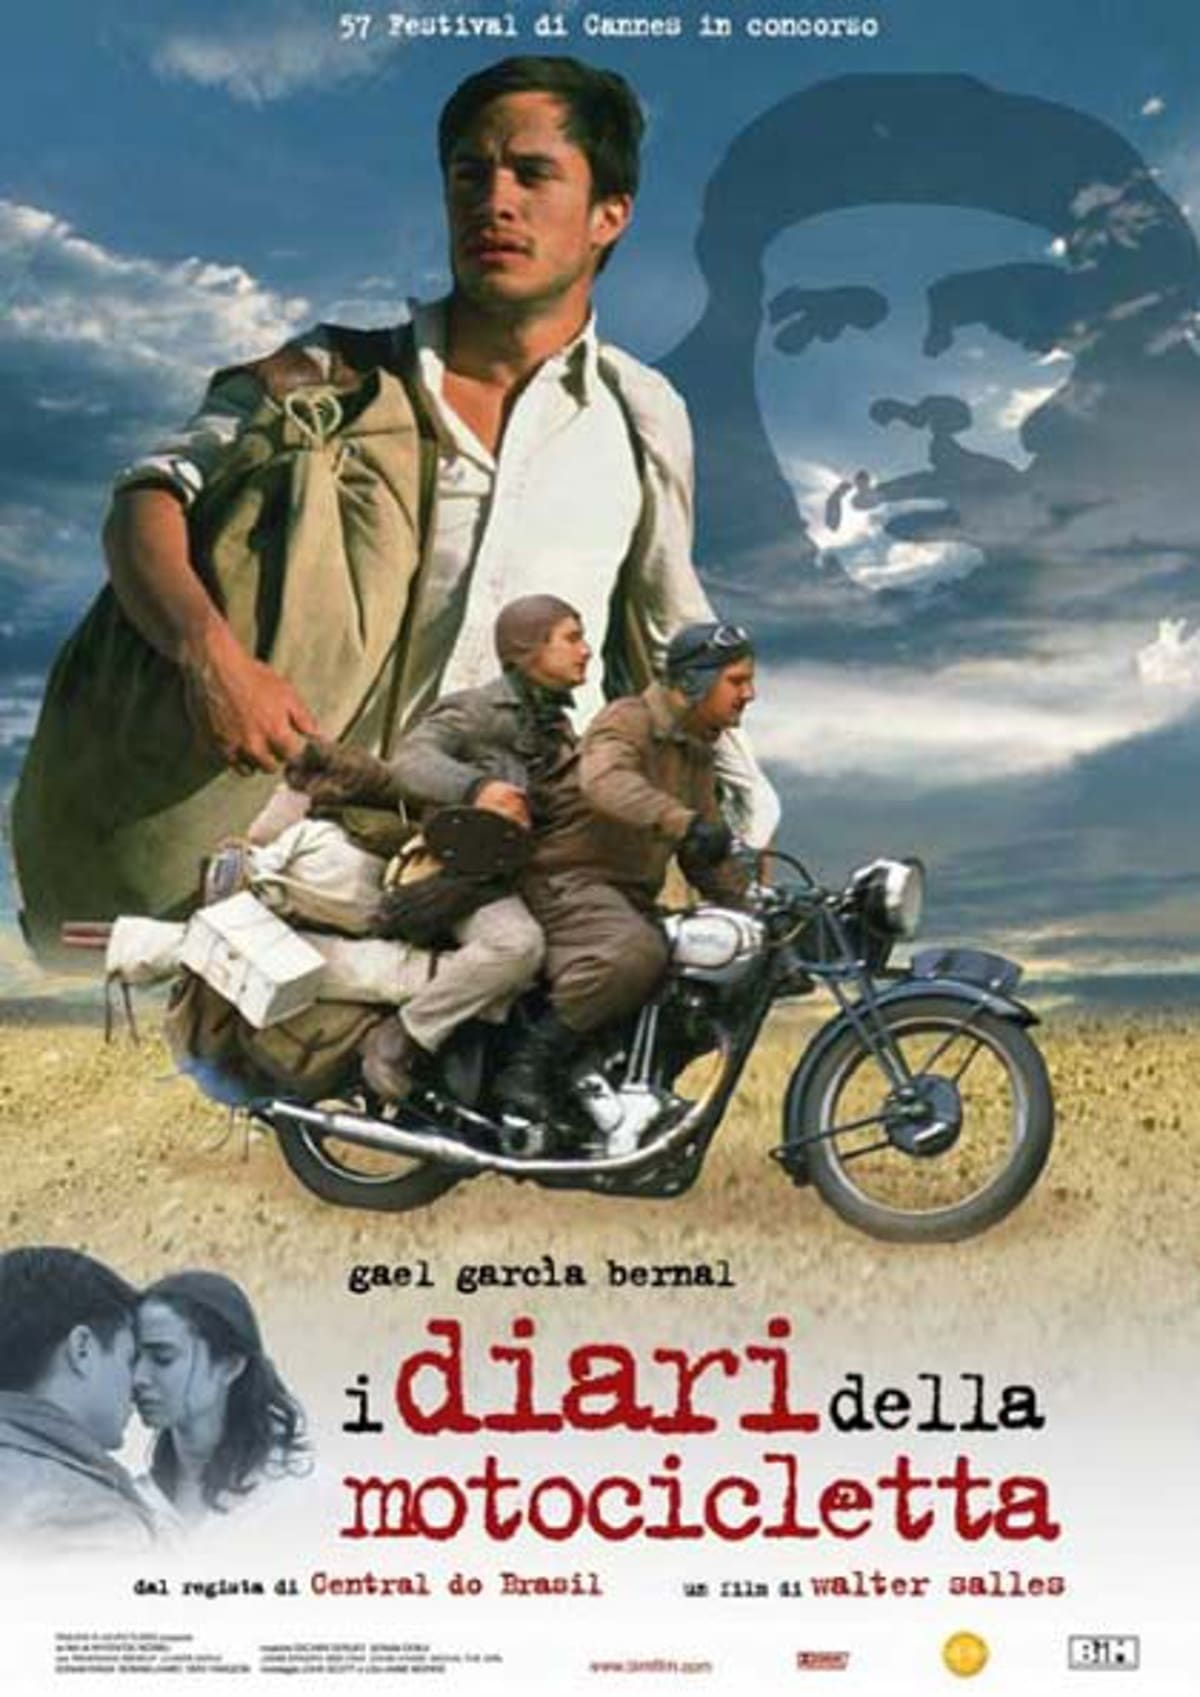 motorcycle diaries The dramatization of a motorcycle road trip che guevara went on in his youth that showed him his life's calling.